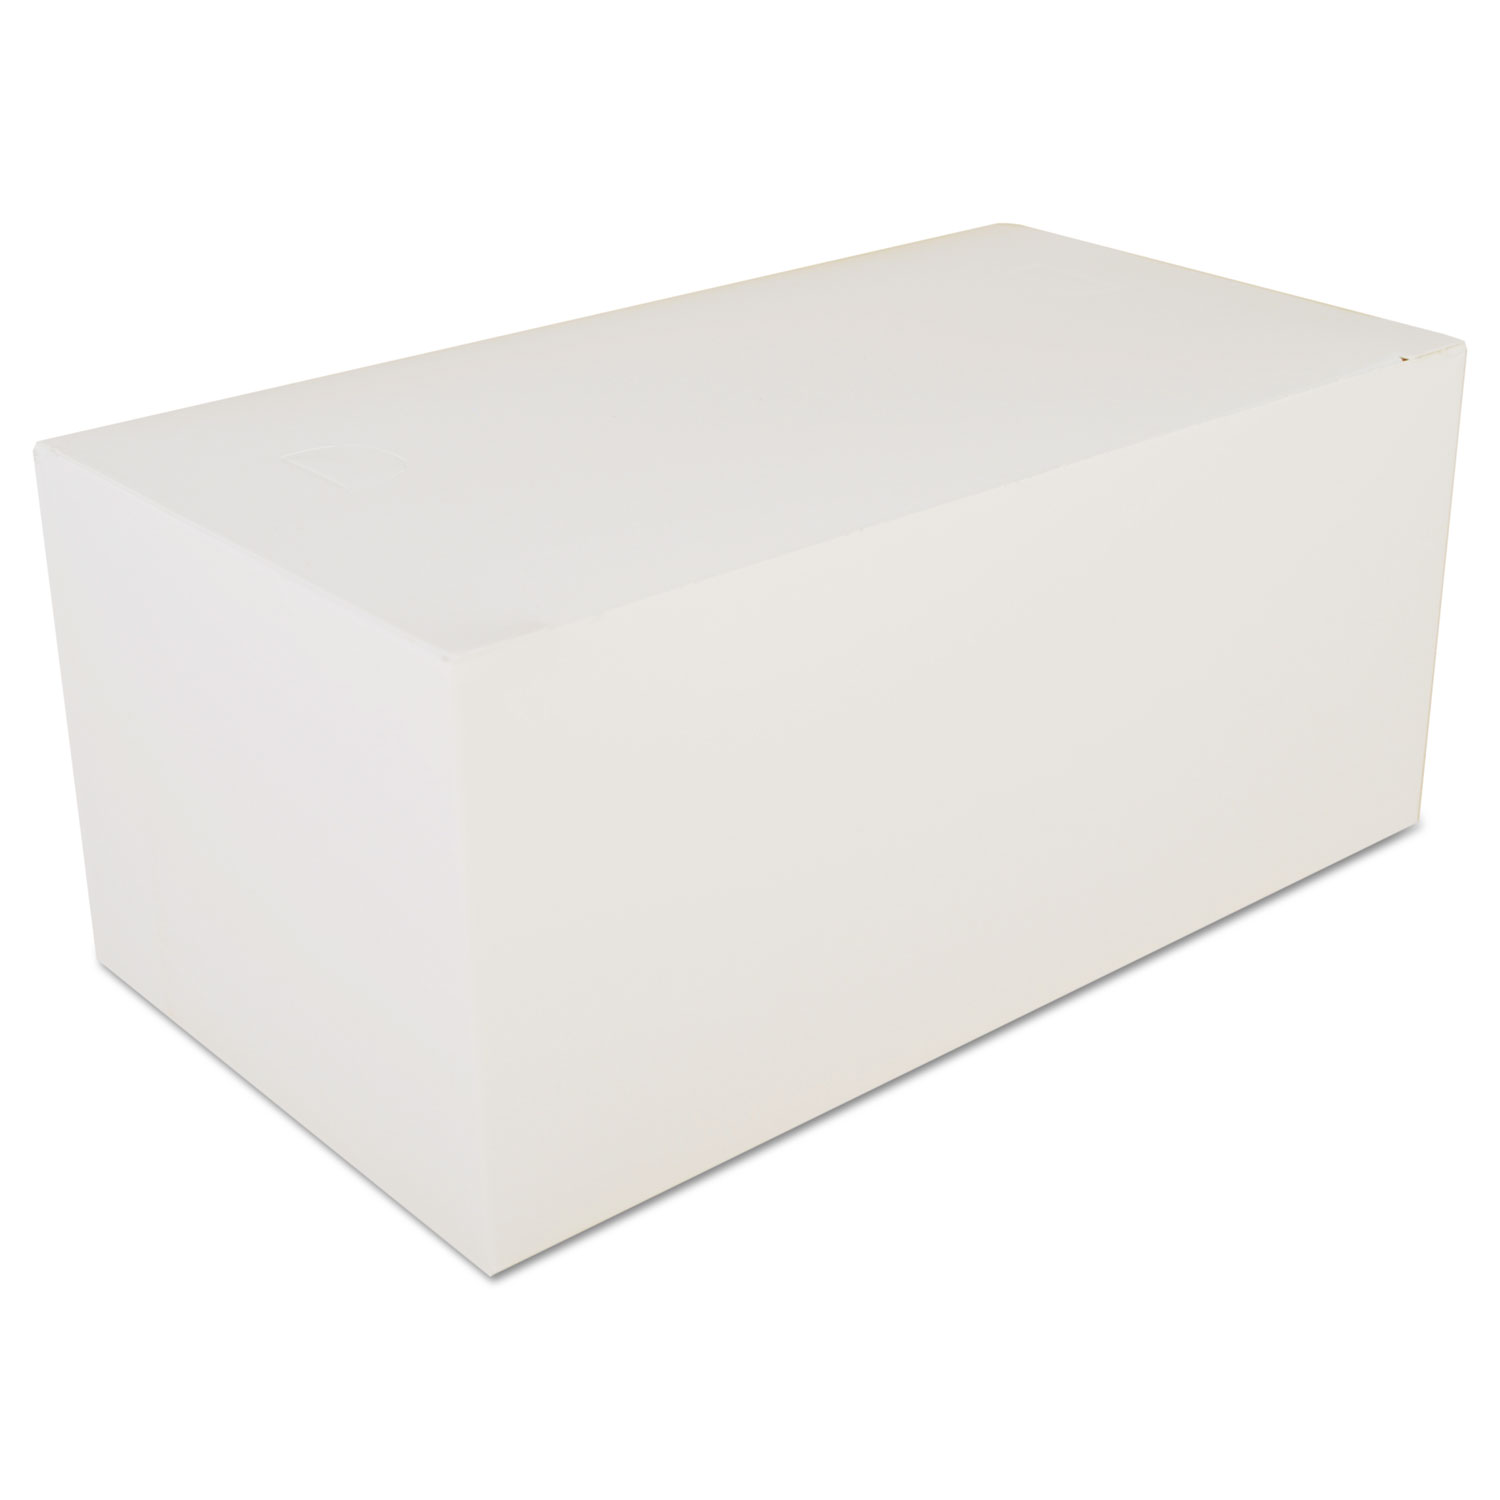 Carryout Tuck Top Boxes, White, 9 x 5 x 4, Paperboard, 250/Carton